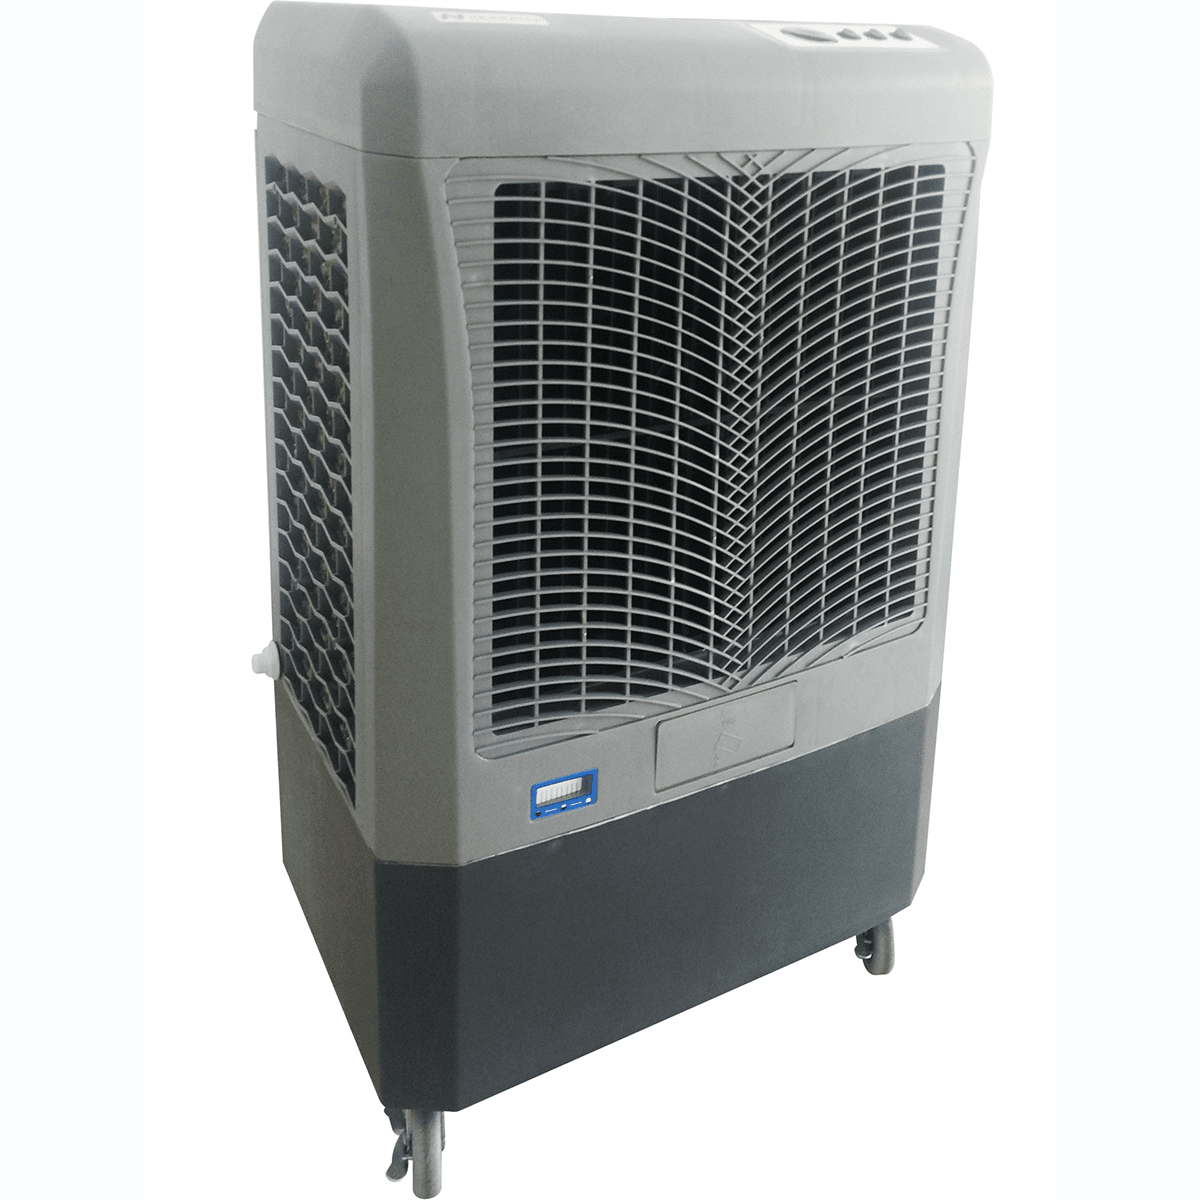 Swamp Cooler Media : Hessaire mc m cfm speed portable evaporative